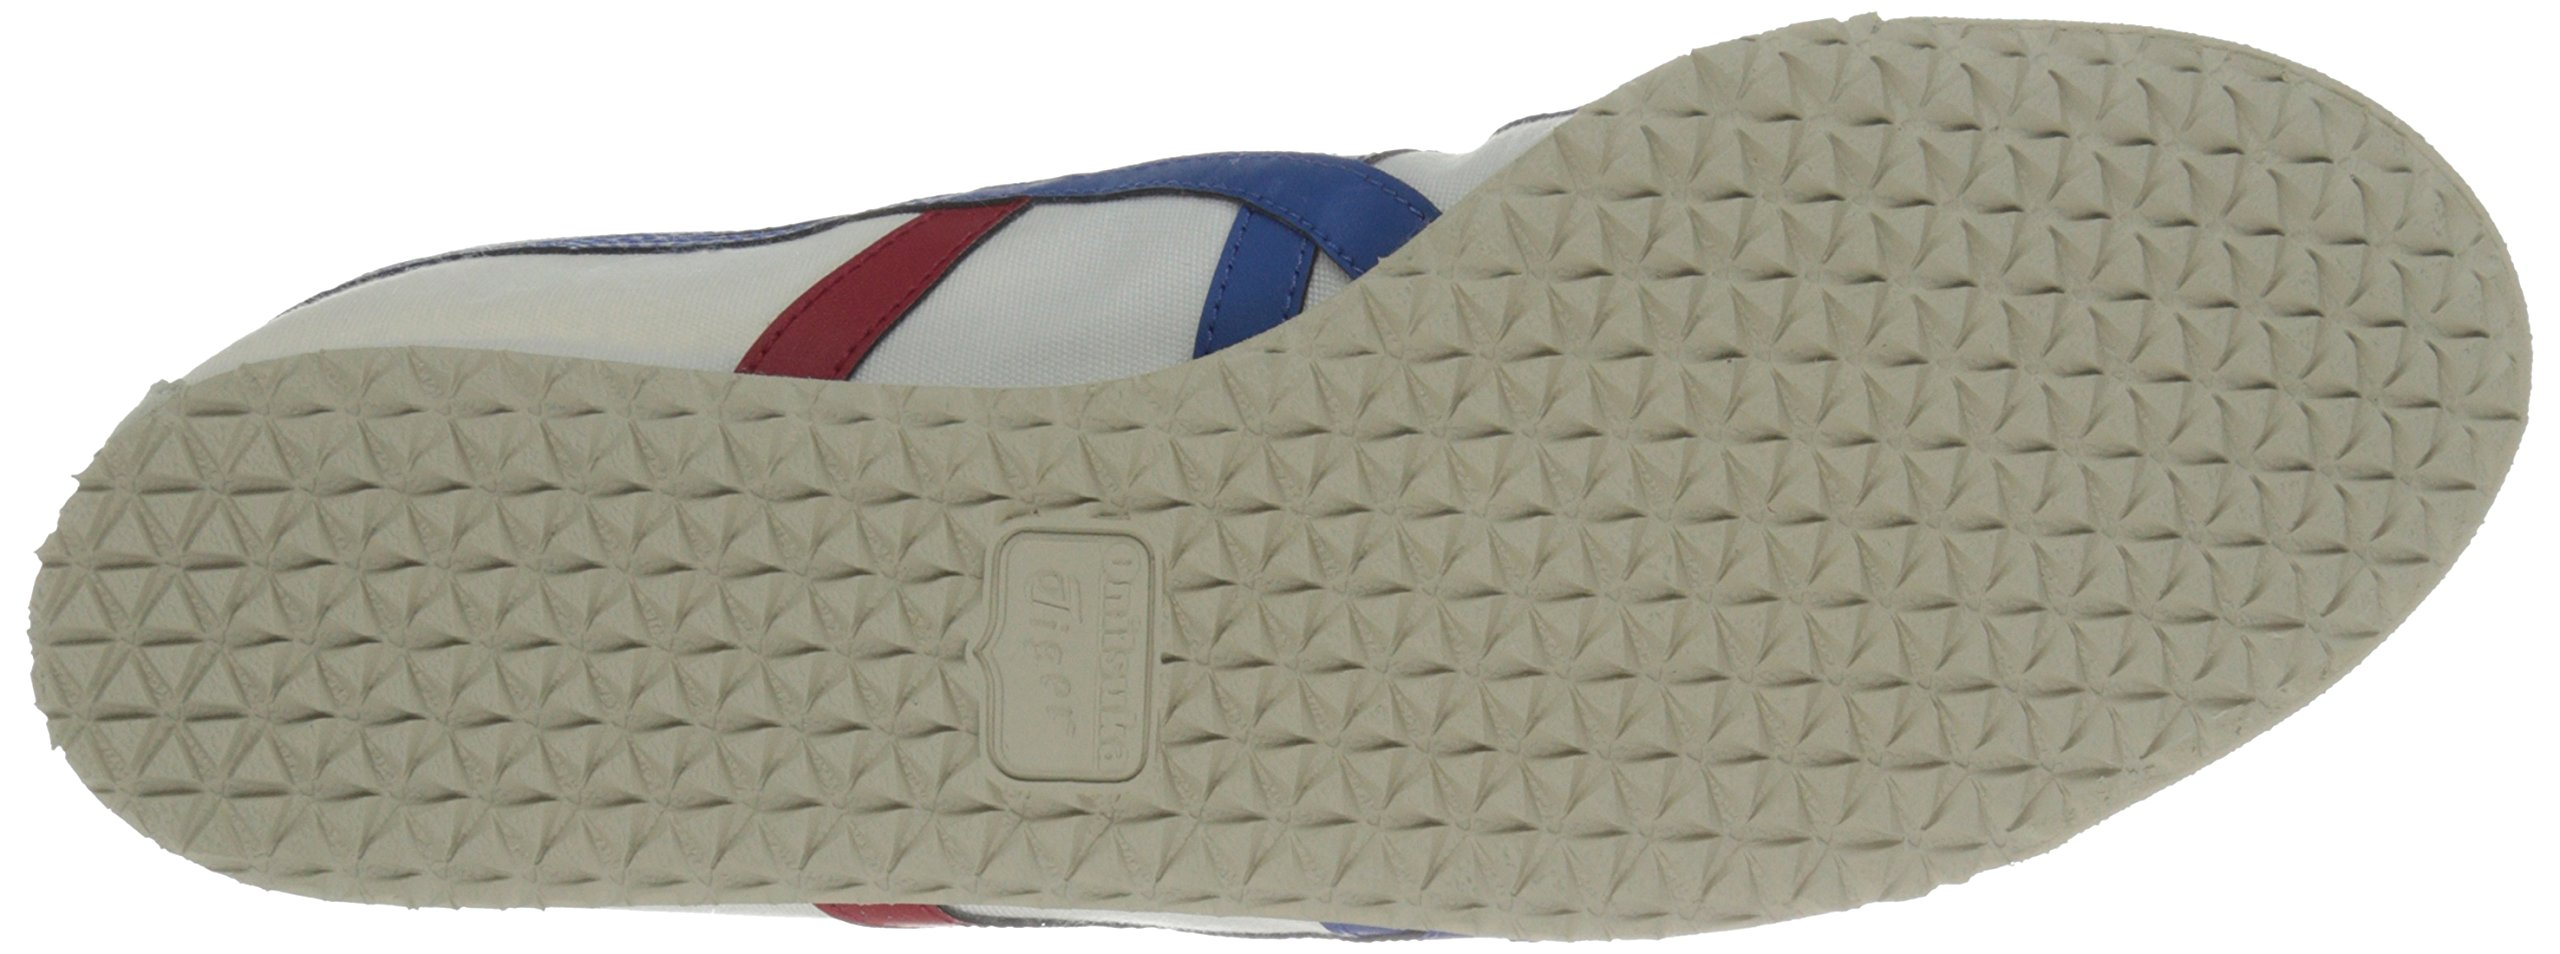 Onitsuka Tiger Unisex Mexico 66 Slip-on Shoes D3K0N, White/Tricolor, 9.5 M US by Onitsuka Tiger (Image #3)